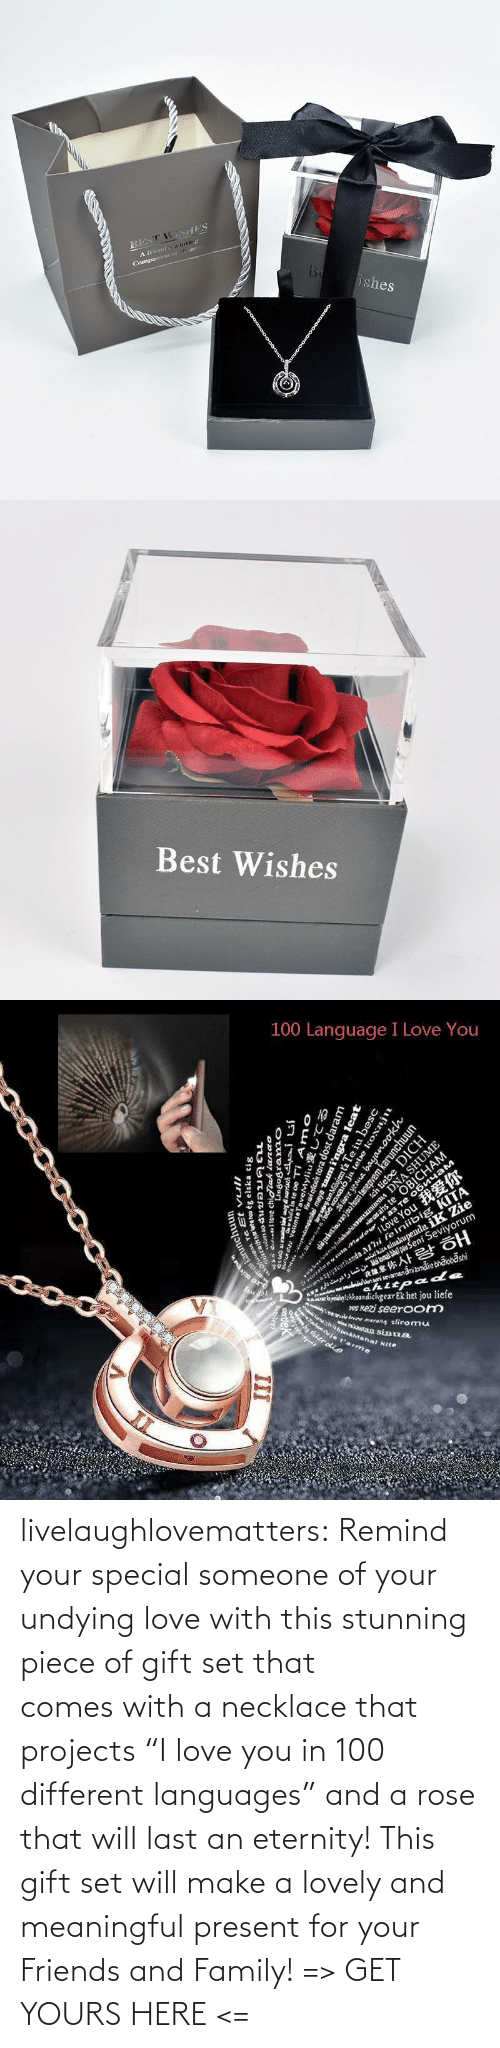 "Gt: livelaughlovematters:  Remind your special someone of your undying love with this stunning piece of gift set that comes with a necklace that projects ""I love you in 100 different languages"" and a rose that will last an eternity! This gift set will make a lovely and meaningful present for your Friends and Family! => GET YOURS HERE <="